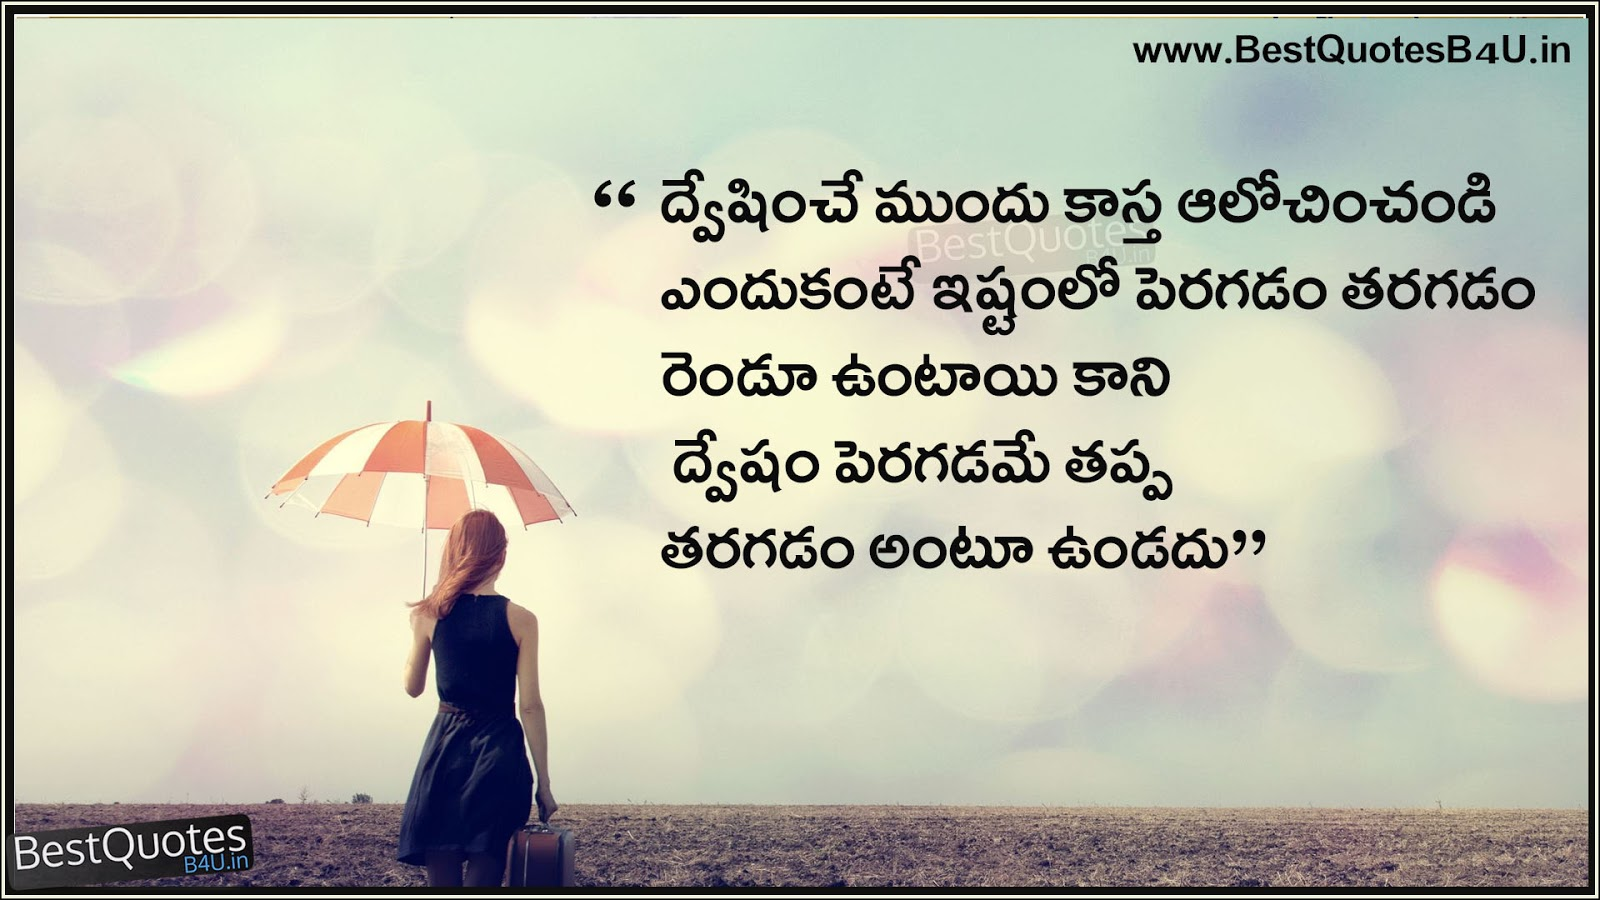 I Love Quotes In Telugu : Hate Love Quotes In Telugu Heart touching telugu quotes about love ...